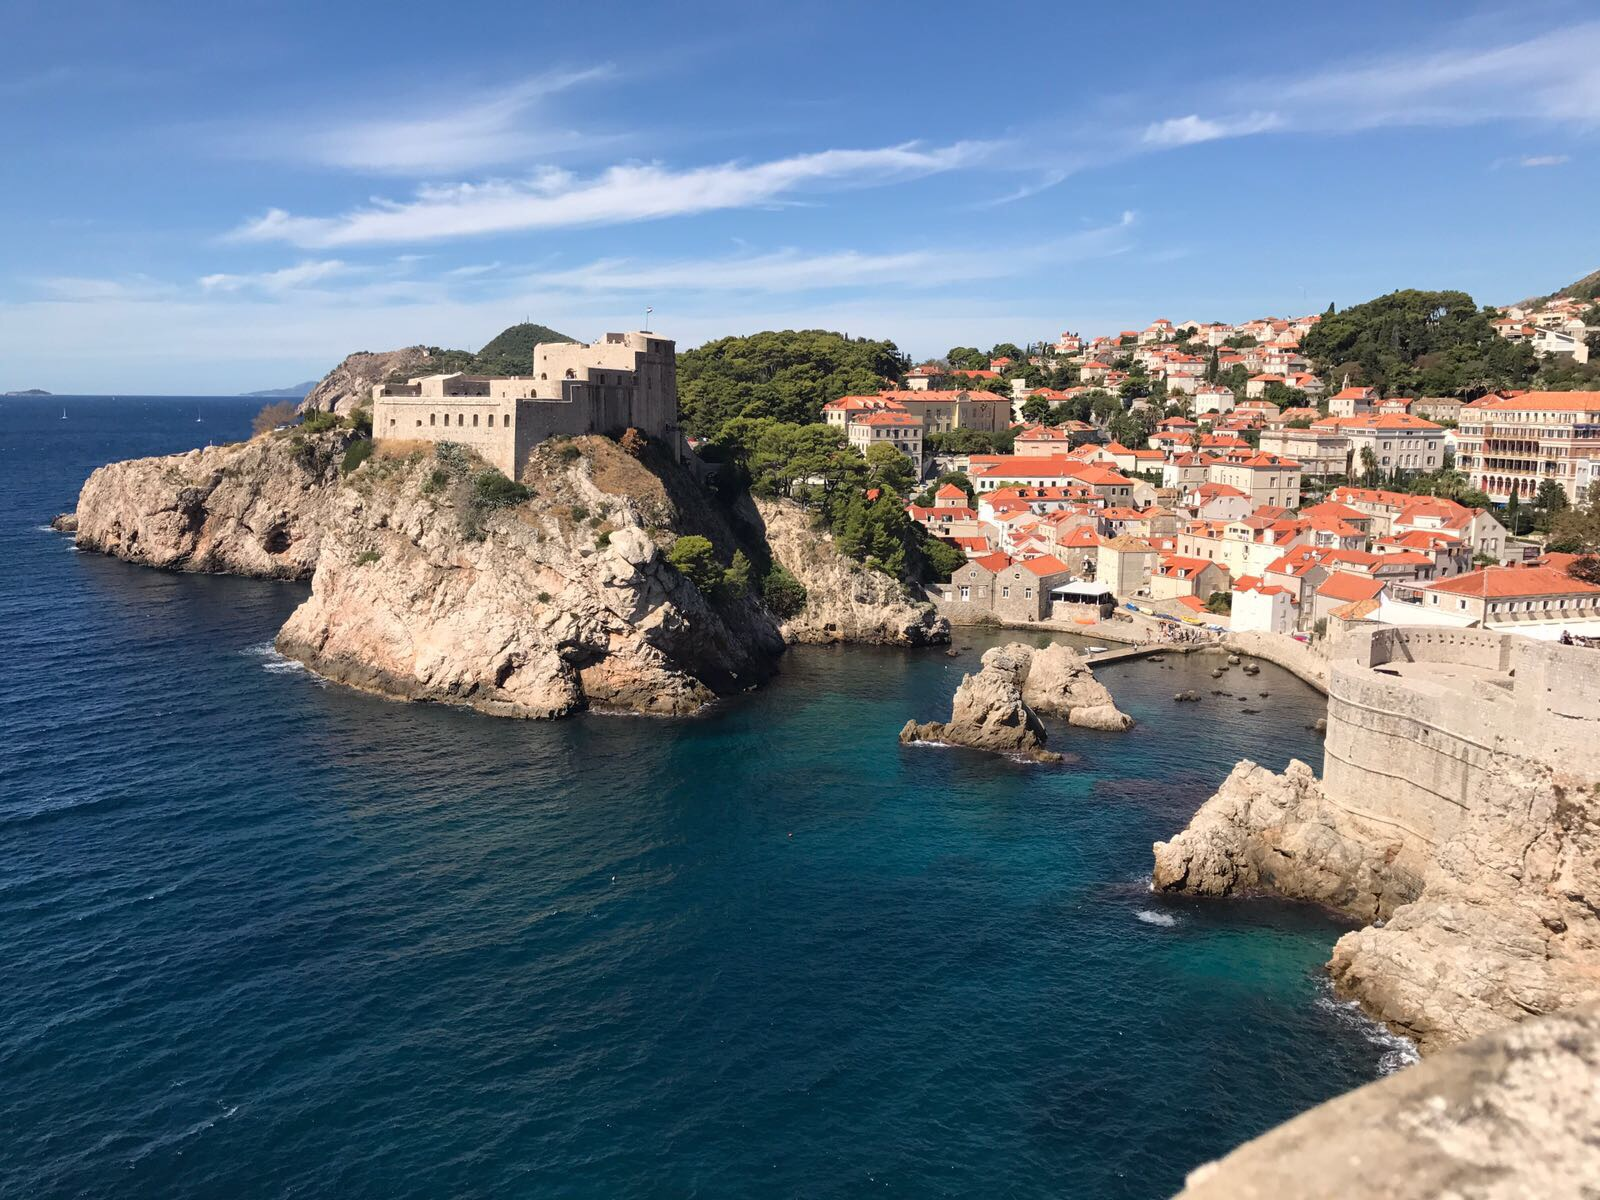 West Harbour Old Town Dubrovnik Croatia and Lovrijenac